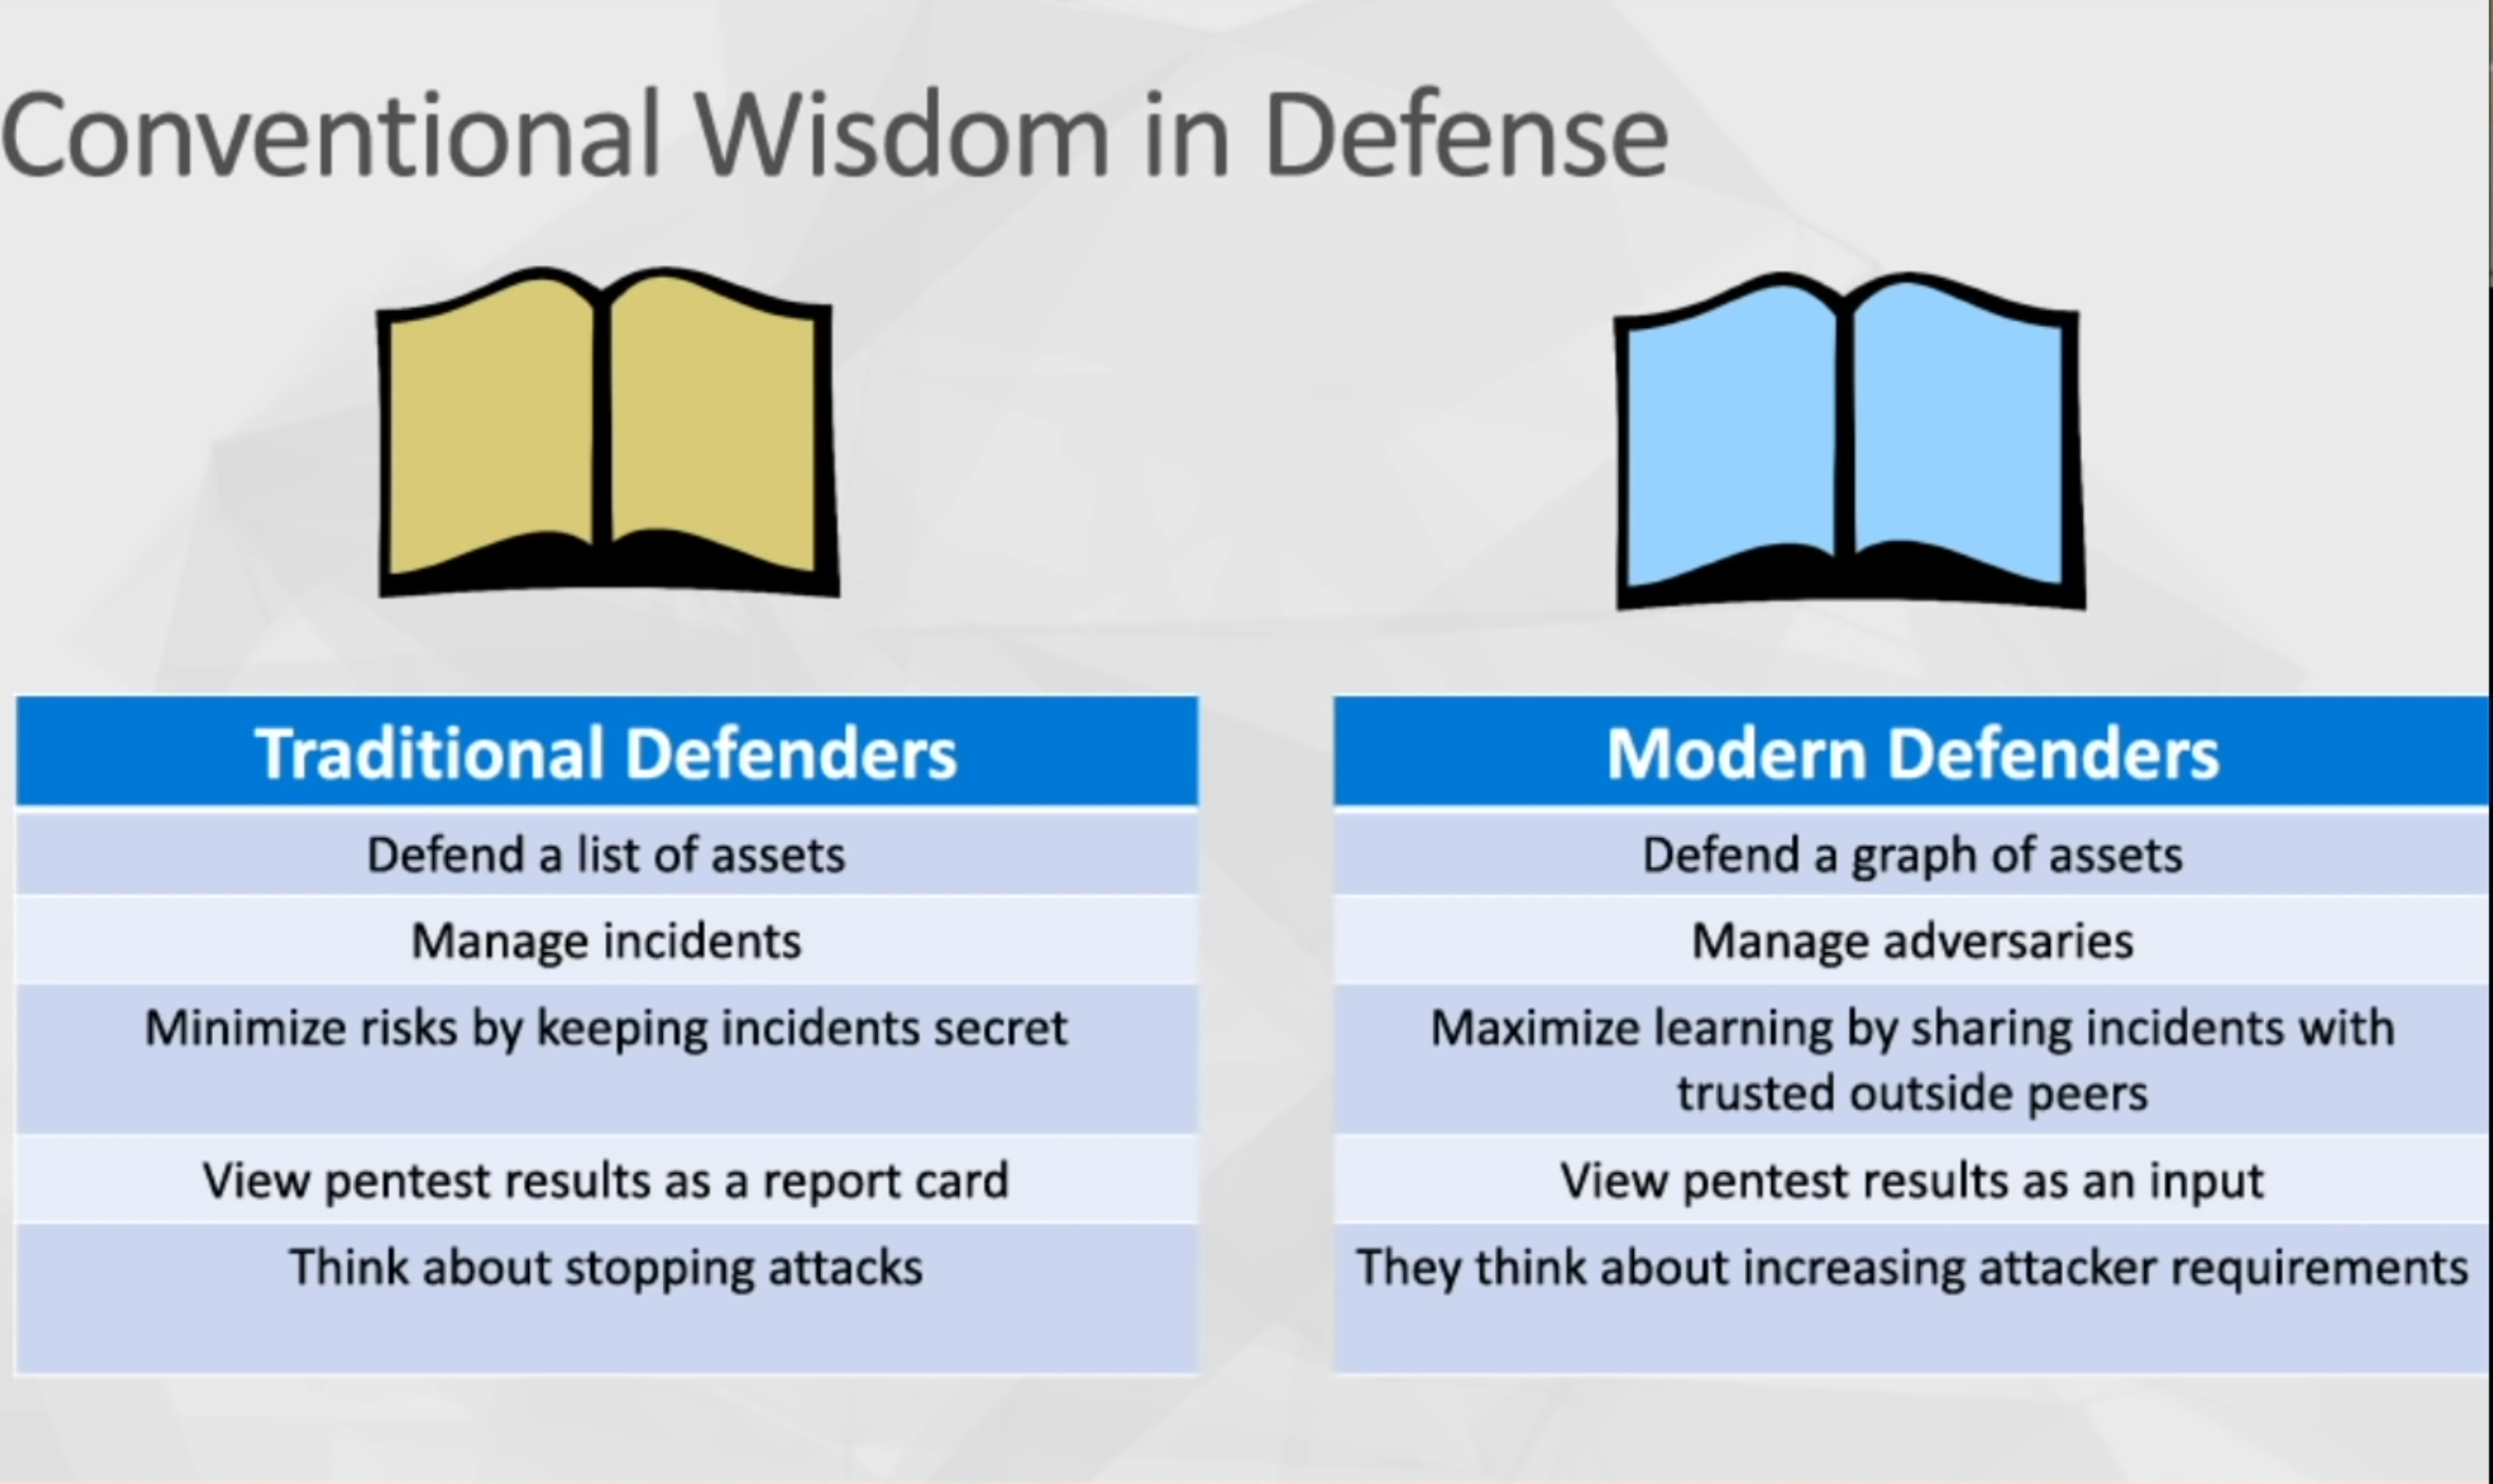 Conventional Wisdom in Defense